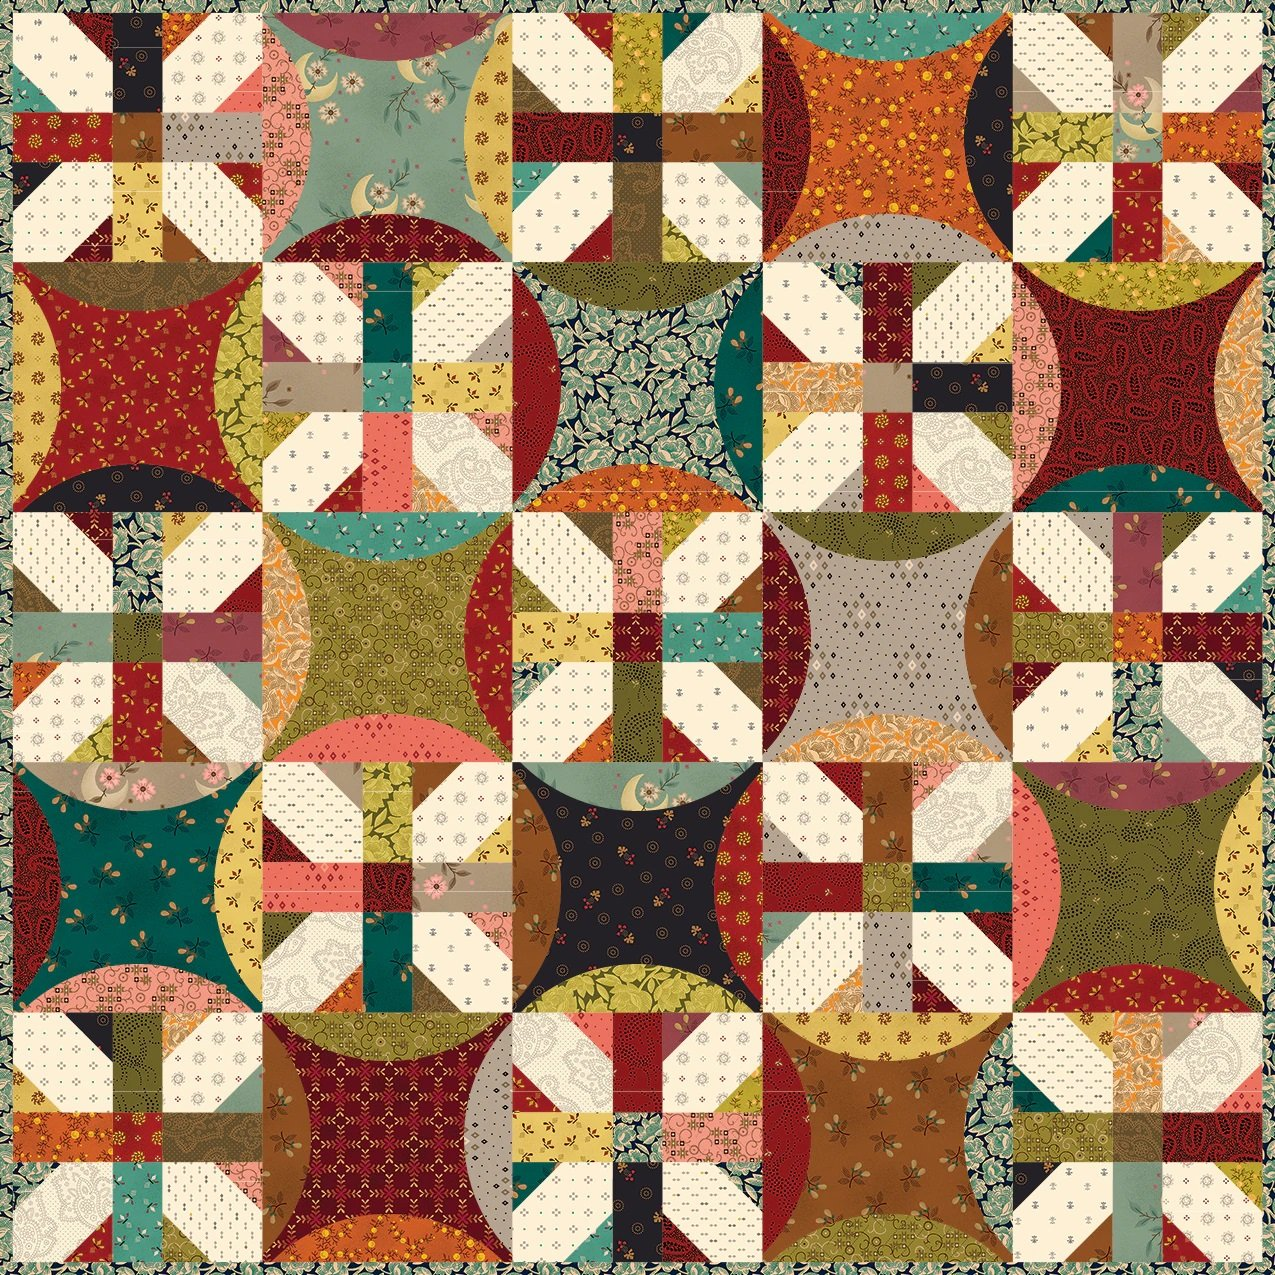 Simple Whatnots 10 - Heartstrings Quilt Kit - 25 1/2 x 25 1/2